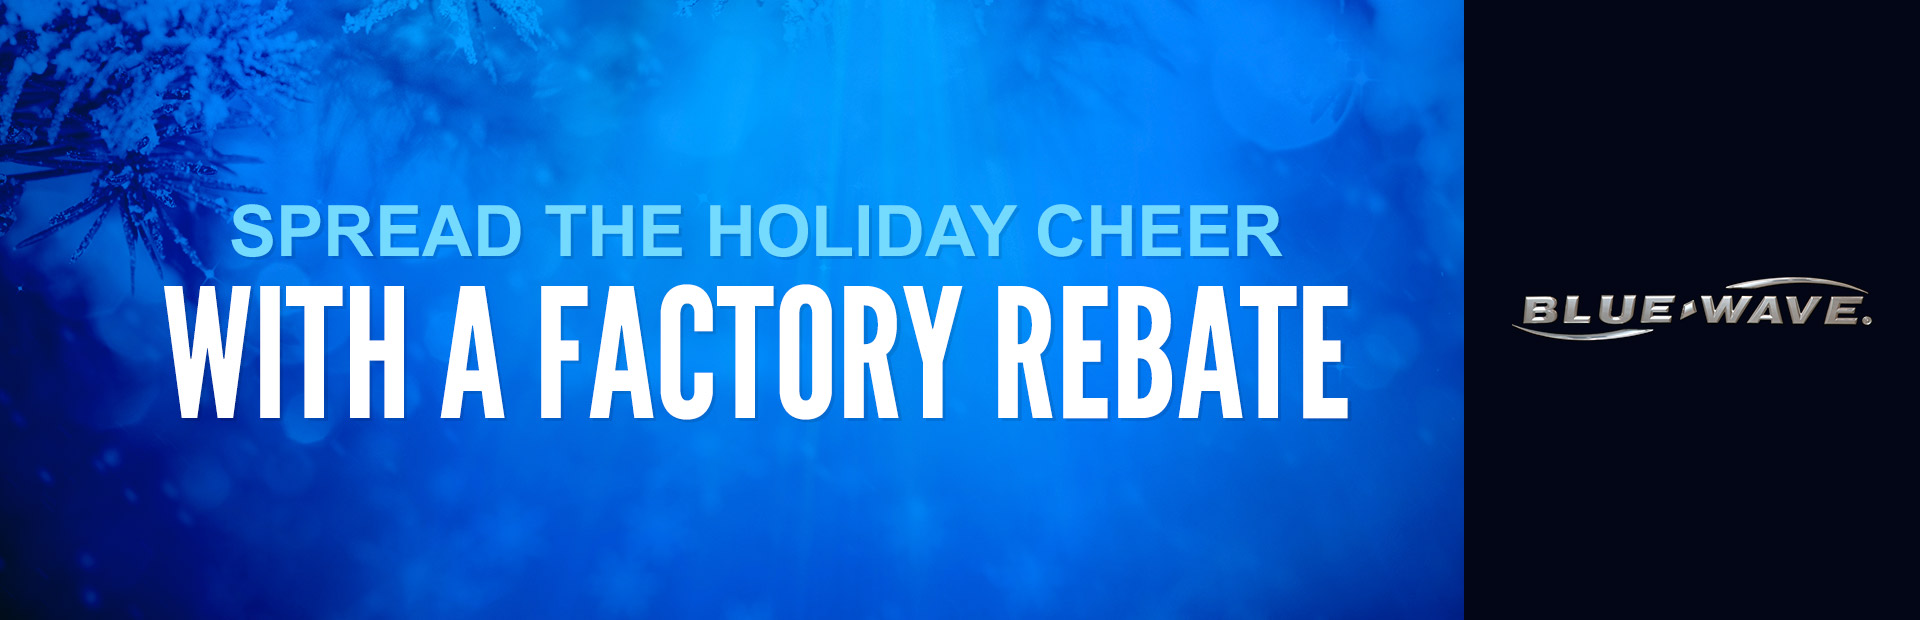 Blue Wave: Spread the Holiday Cheer with a Factory Rebate